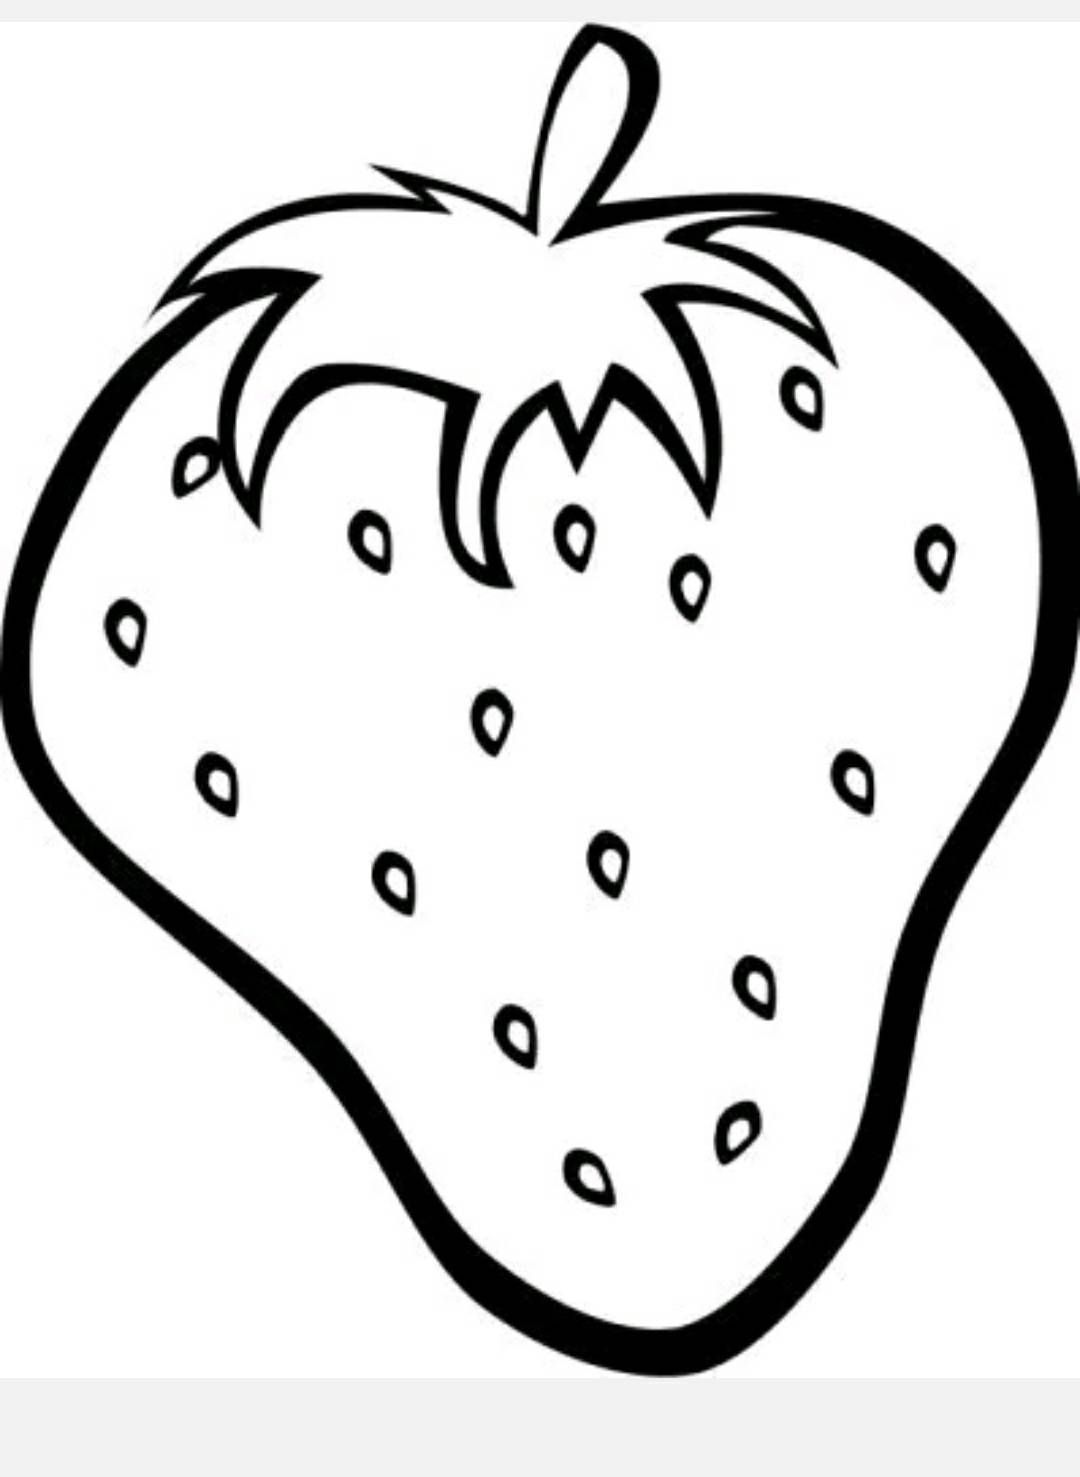 Strawberry Yeti Decal, Die Cut Vinyl, Car Decal Sticker